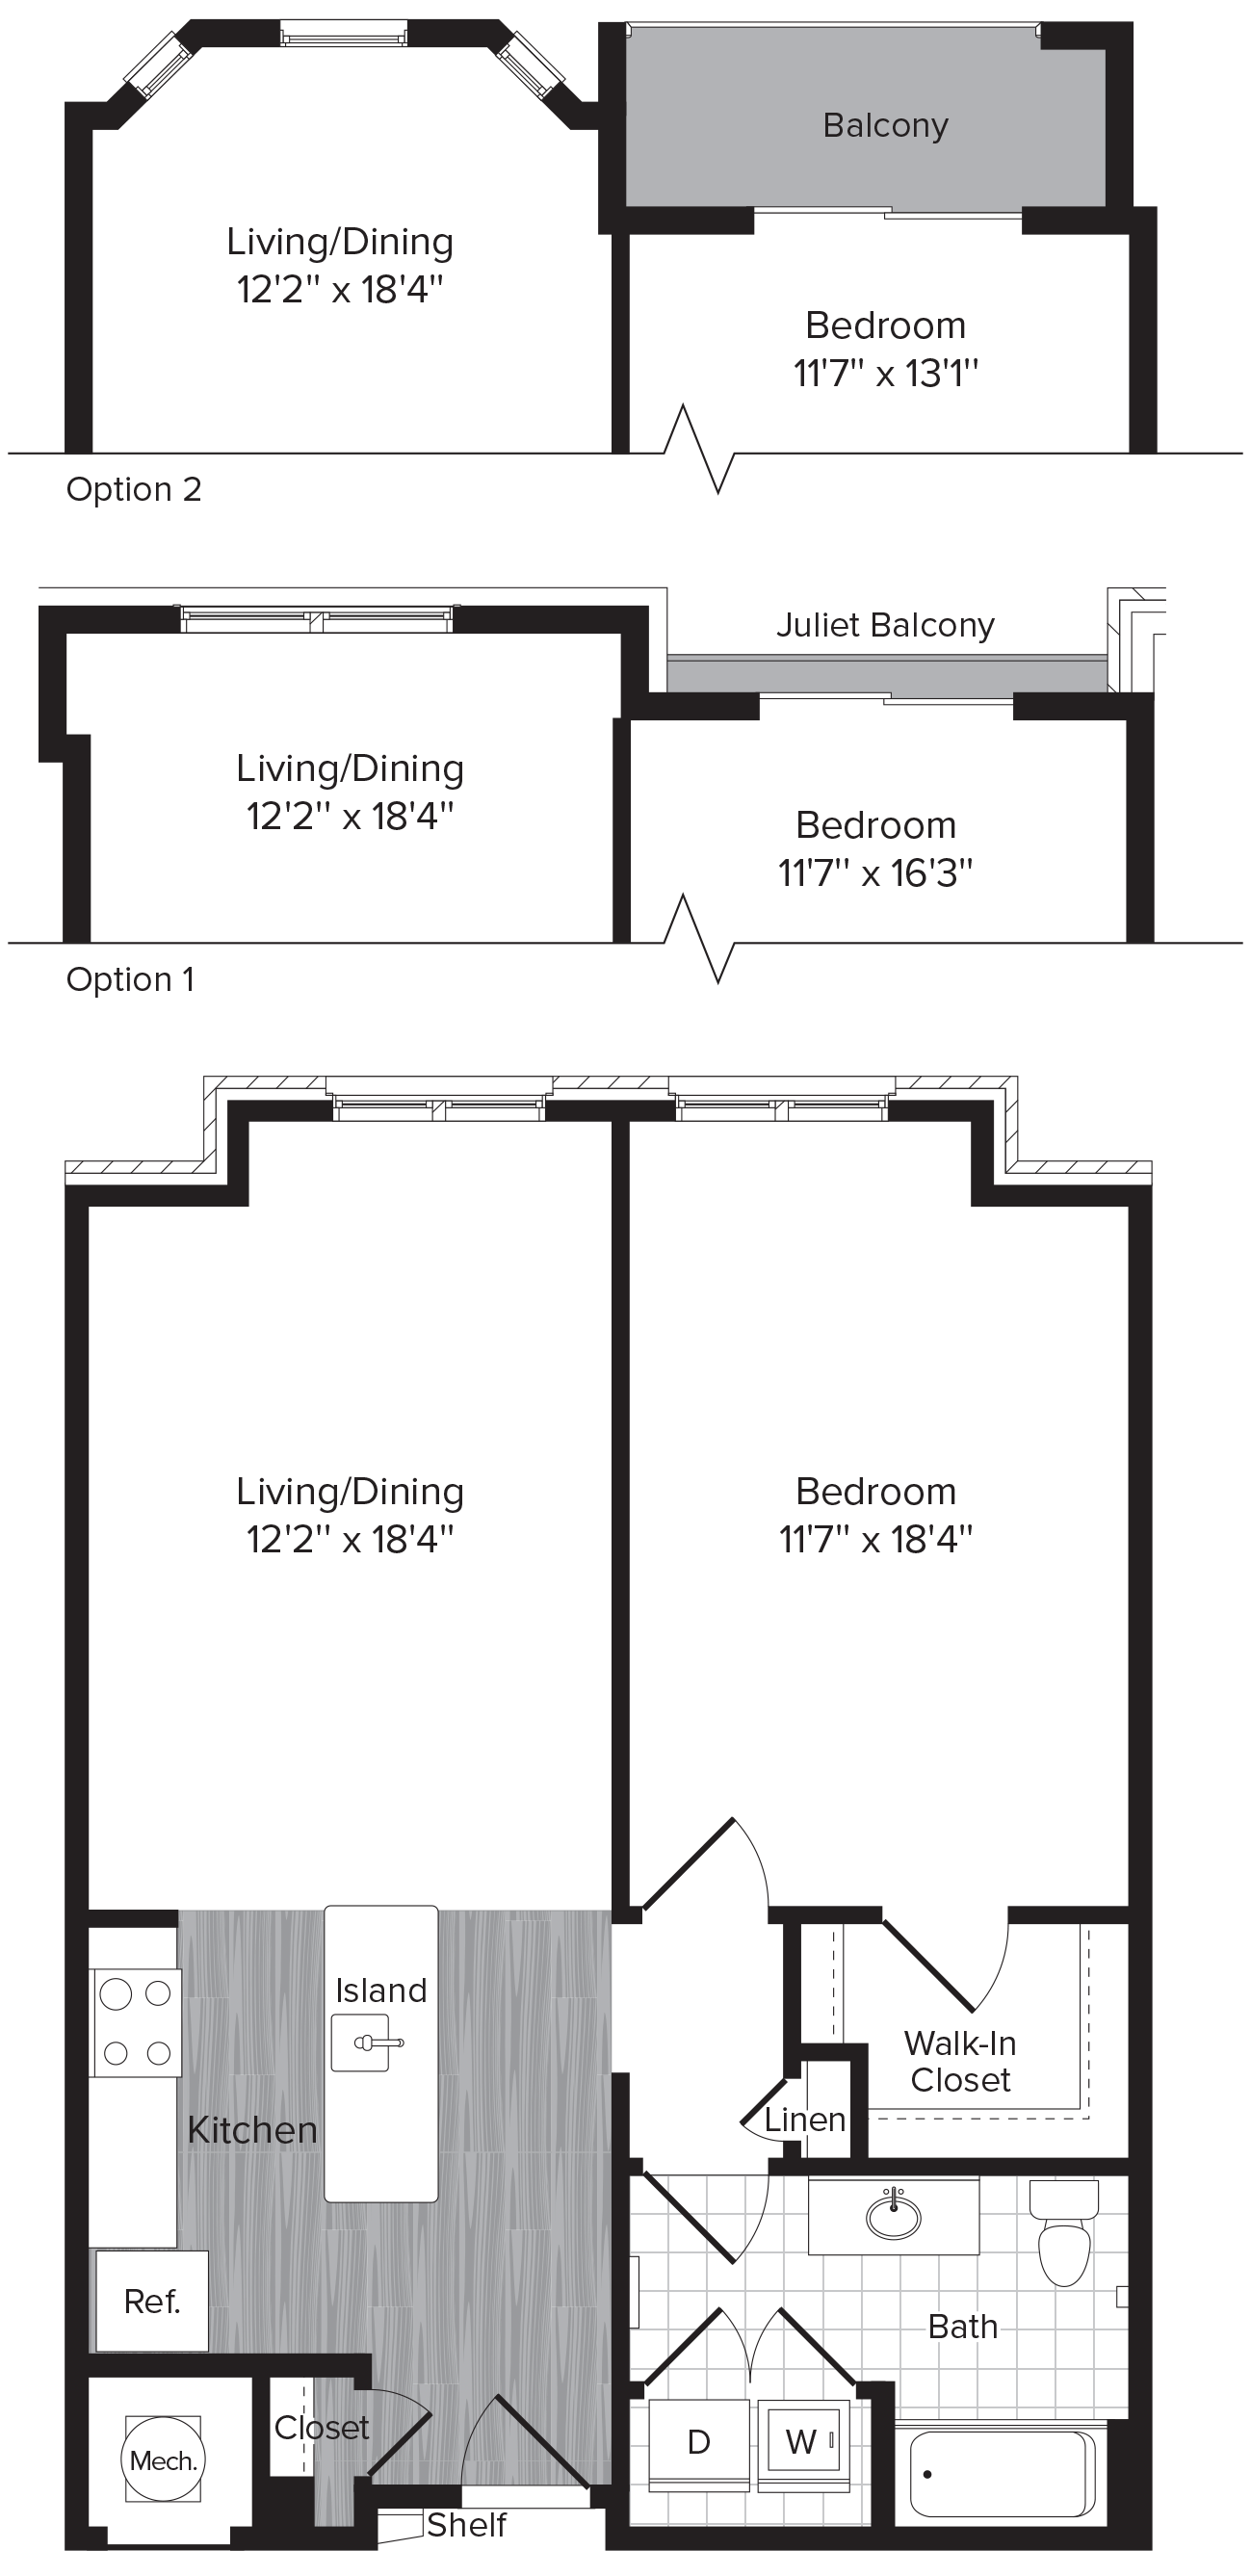 floor plans brompton house apartments and townhomes for rent 1 bed 1 bath